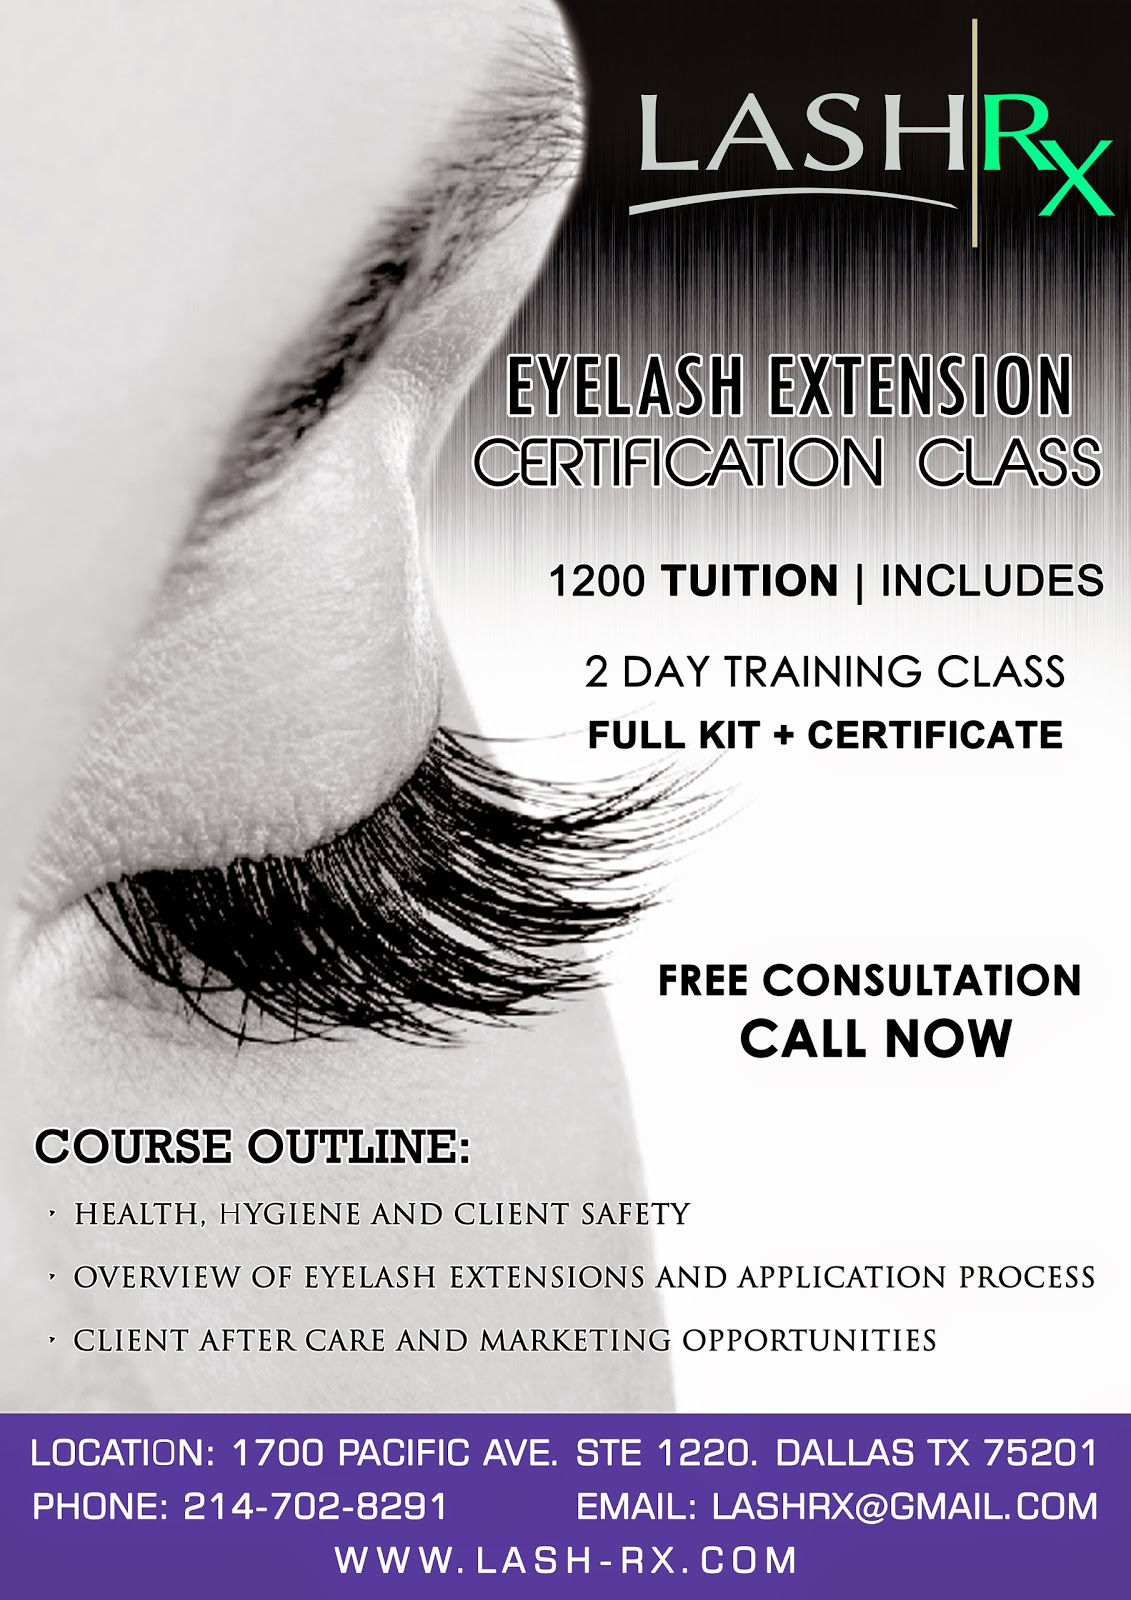 Lash Rx Interested In Eyelash Extensions Certification Training